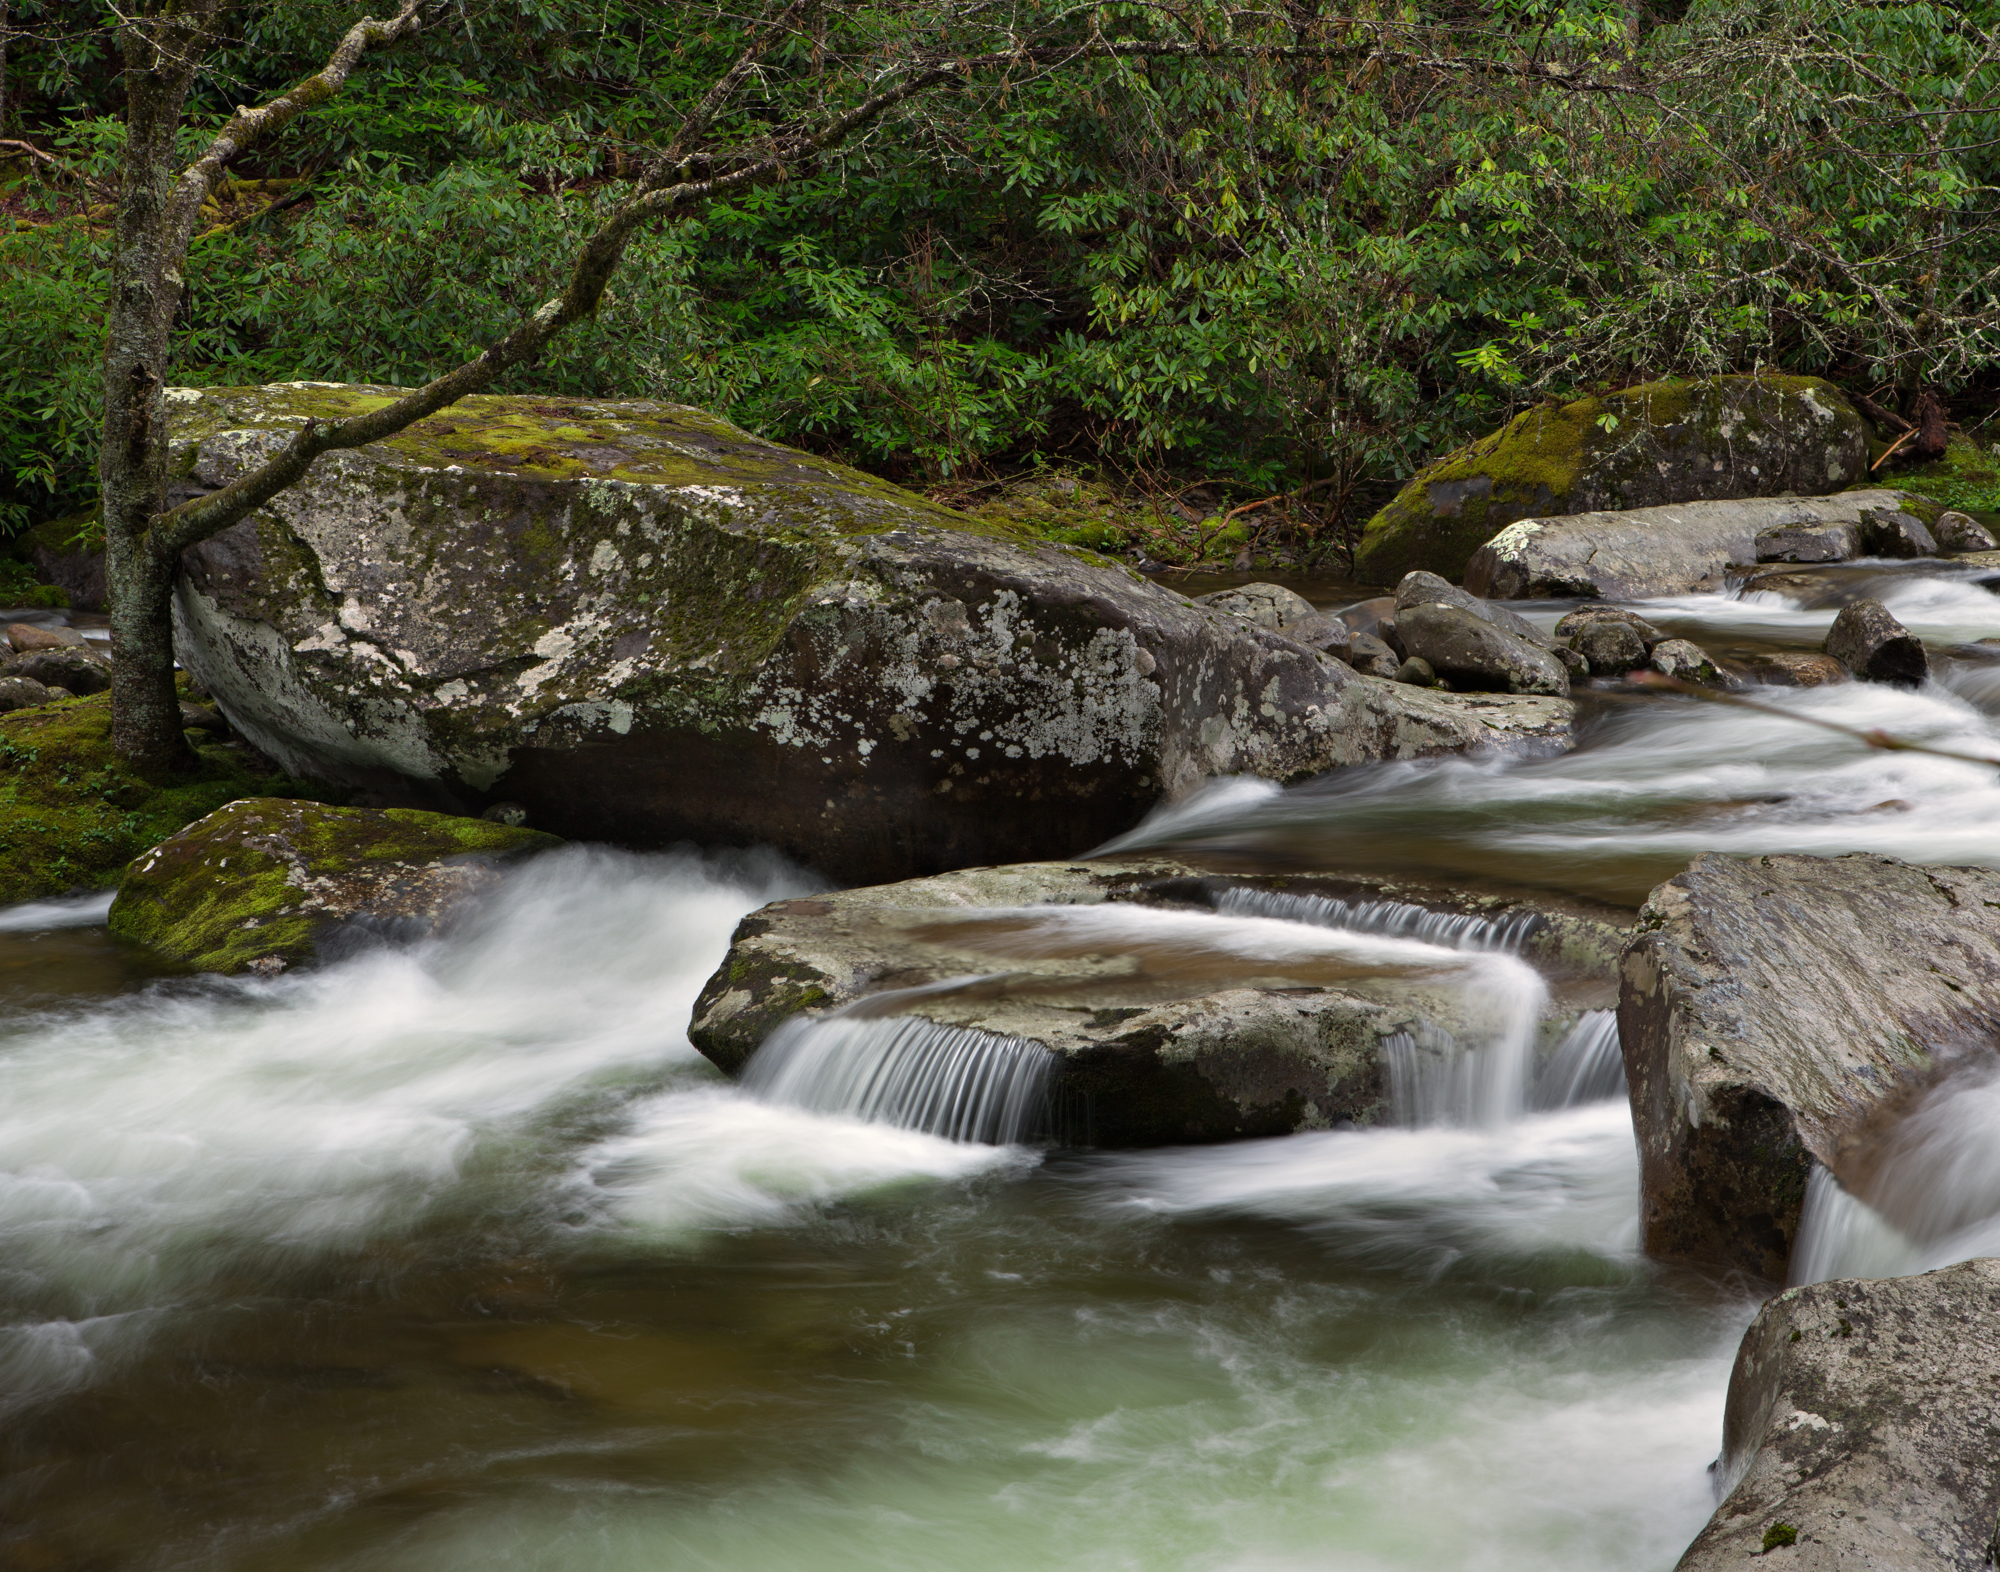 28. Big Creek, Great Smoky Mountains National Park, Tennessee